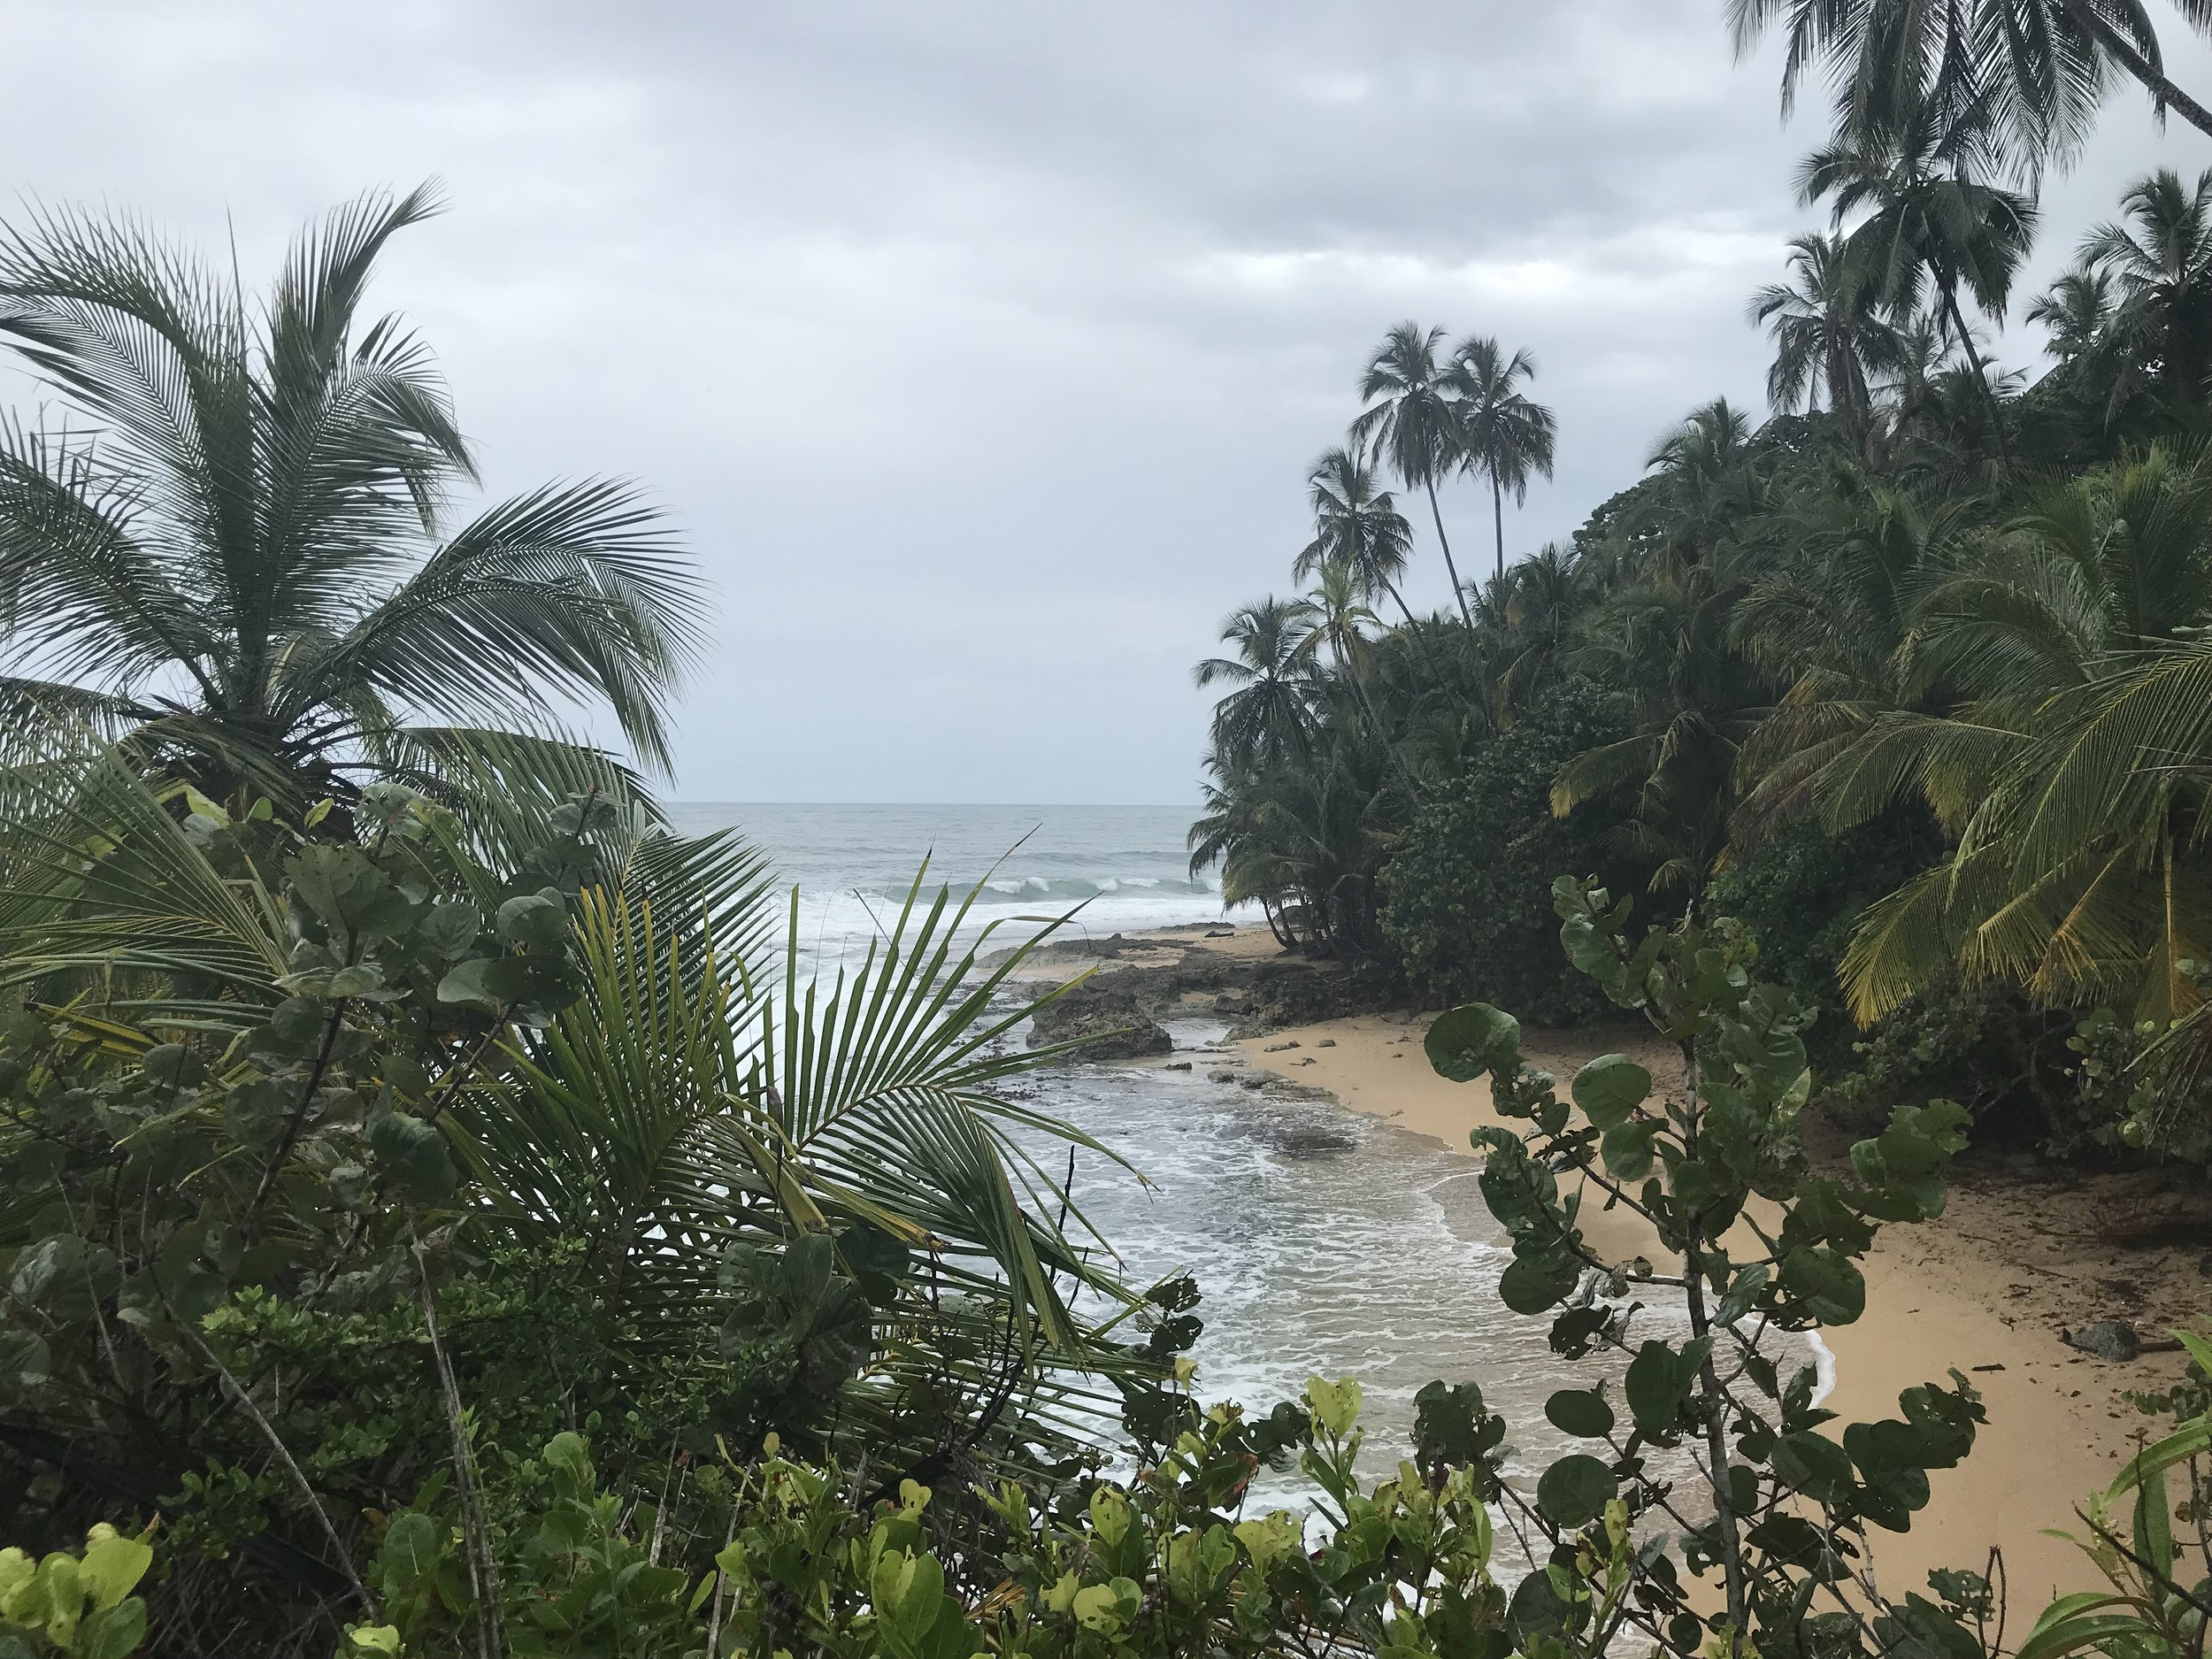 There are small coves around the beach near Punta Uva and Manzanillo - Go to Gandoca-Manzanillo National Wildlife Refuge for a nice trail hike next to the beach.